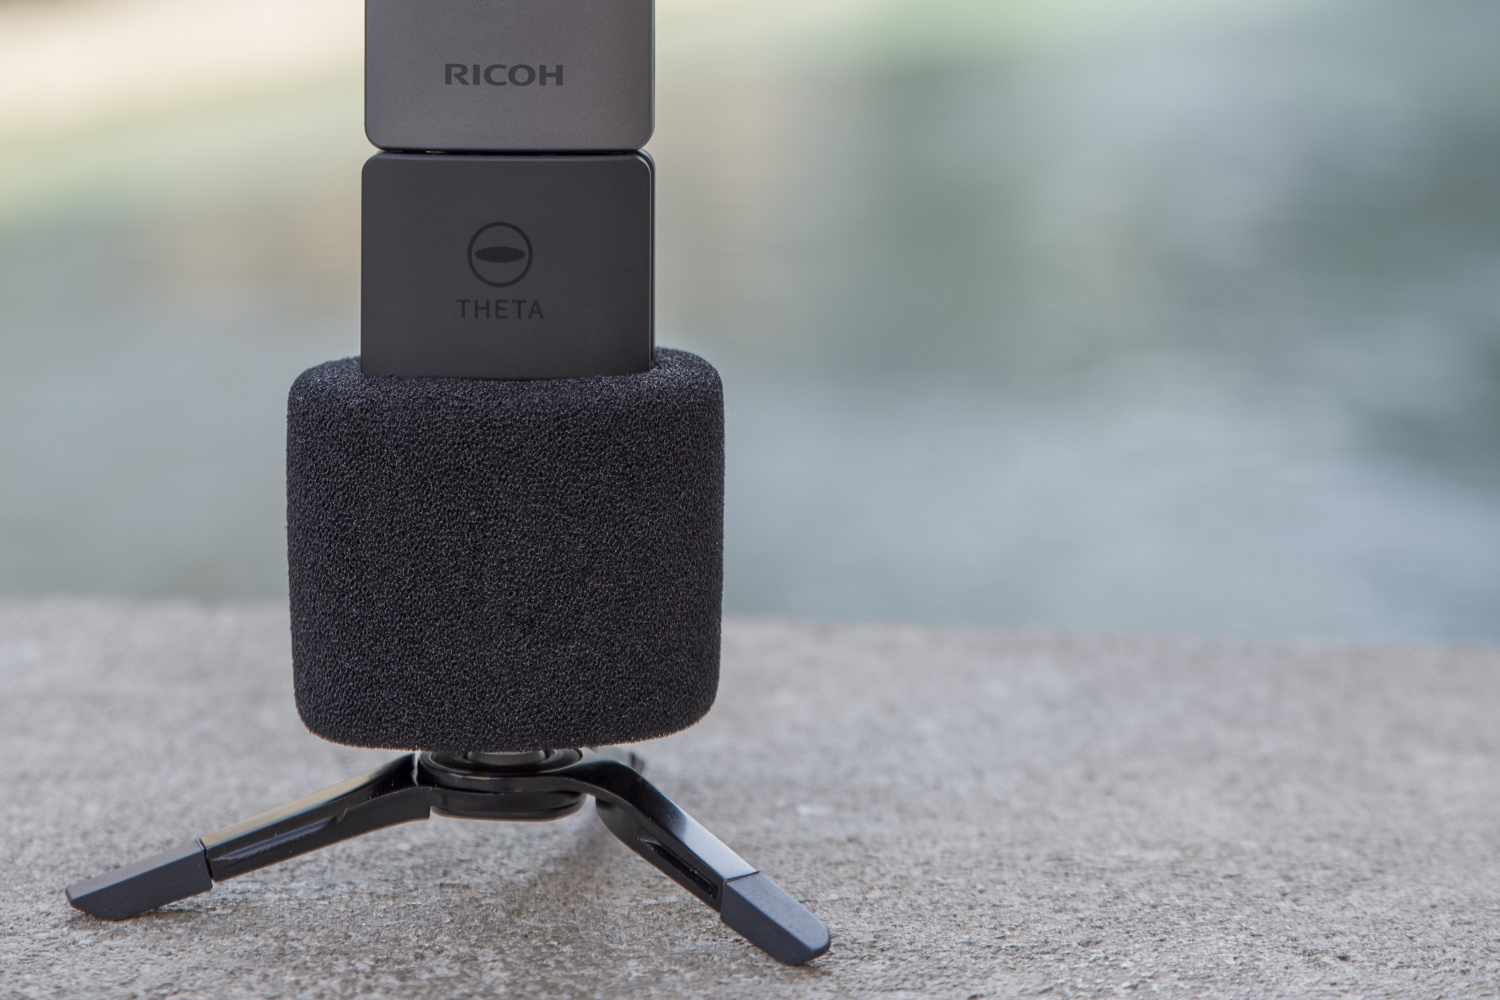 Ricoh Theta V Brings Reality To Vr With 4k And Surround Sound